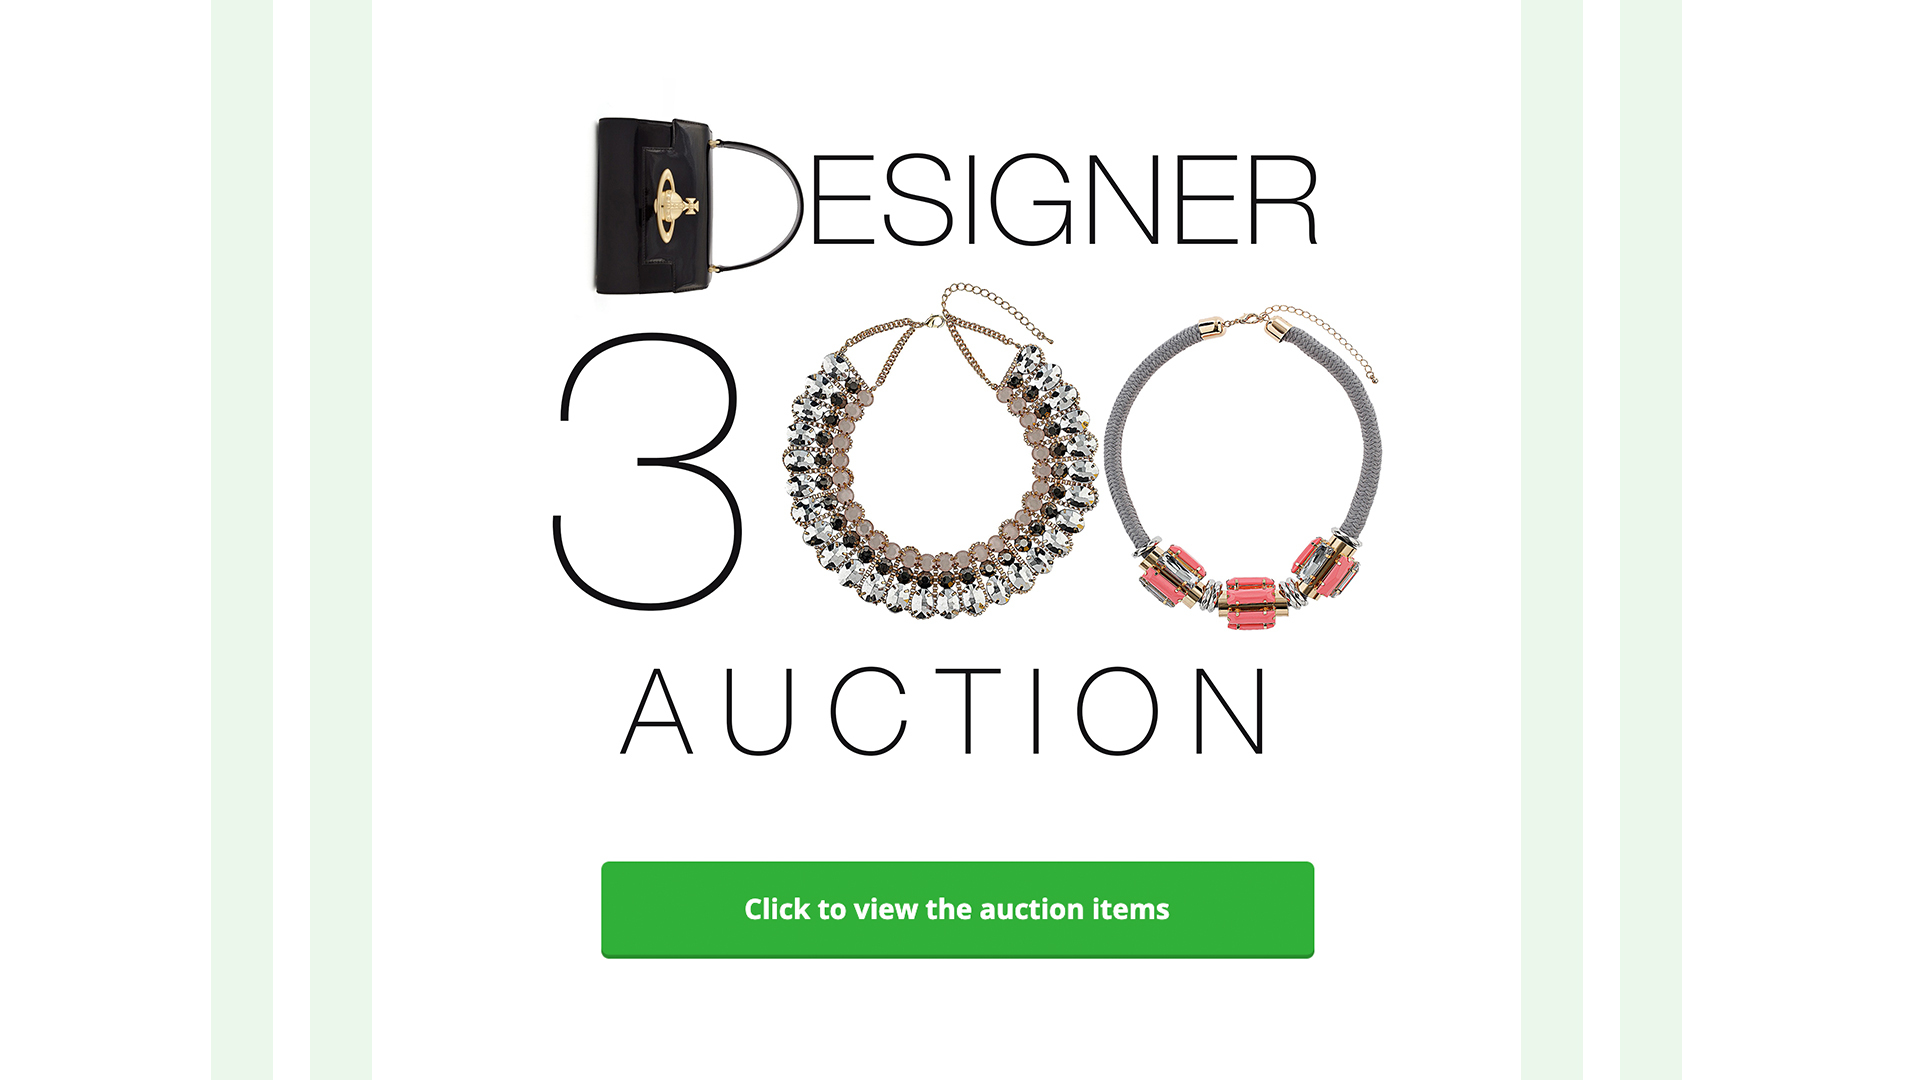 Designer Auction